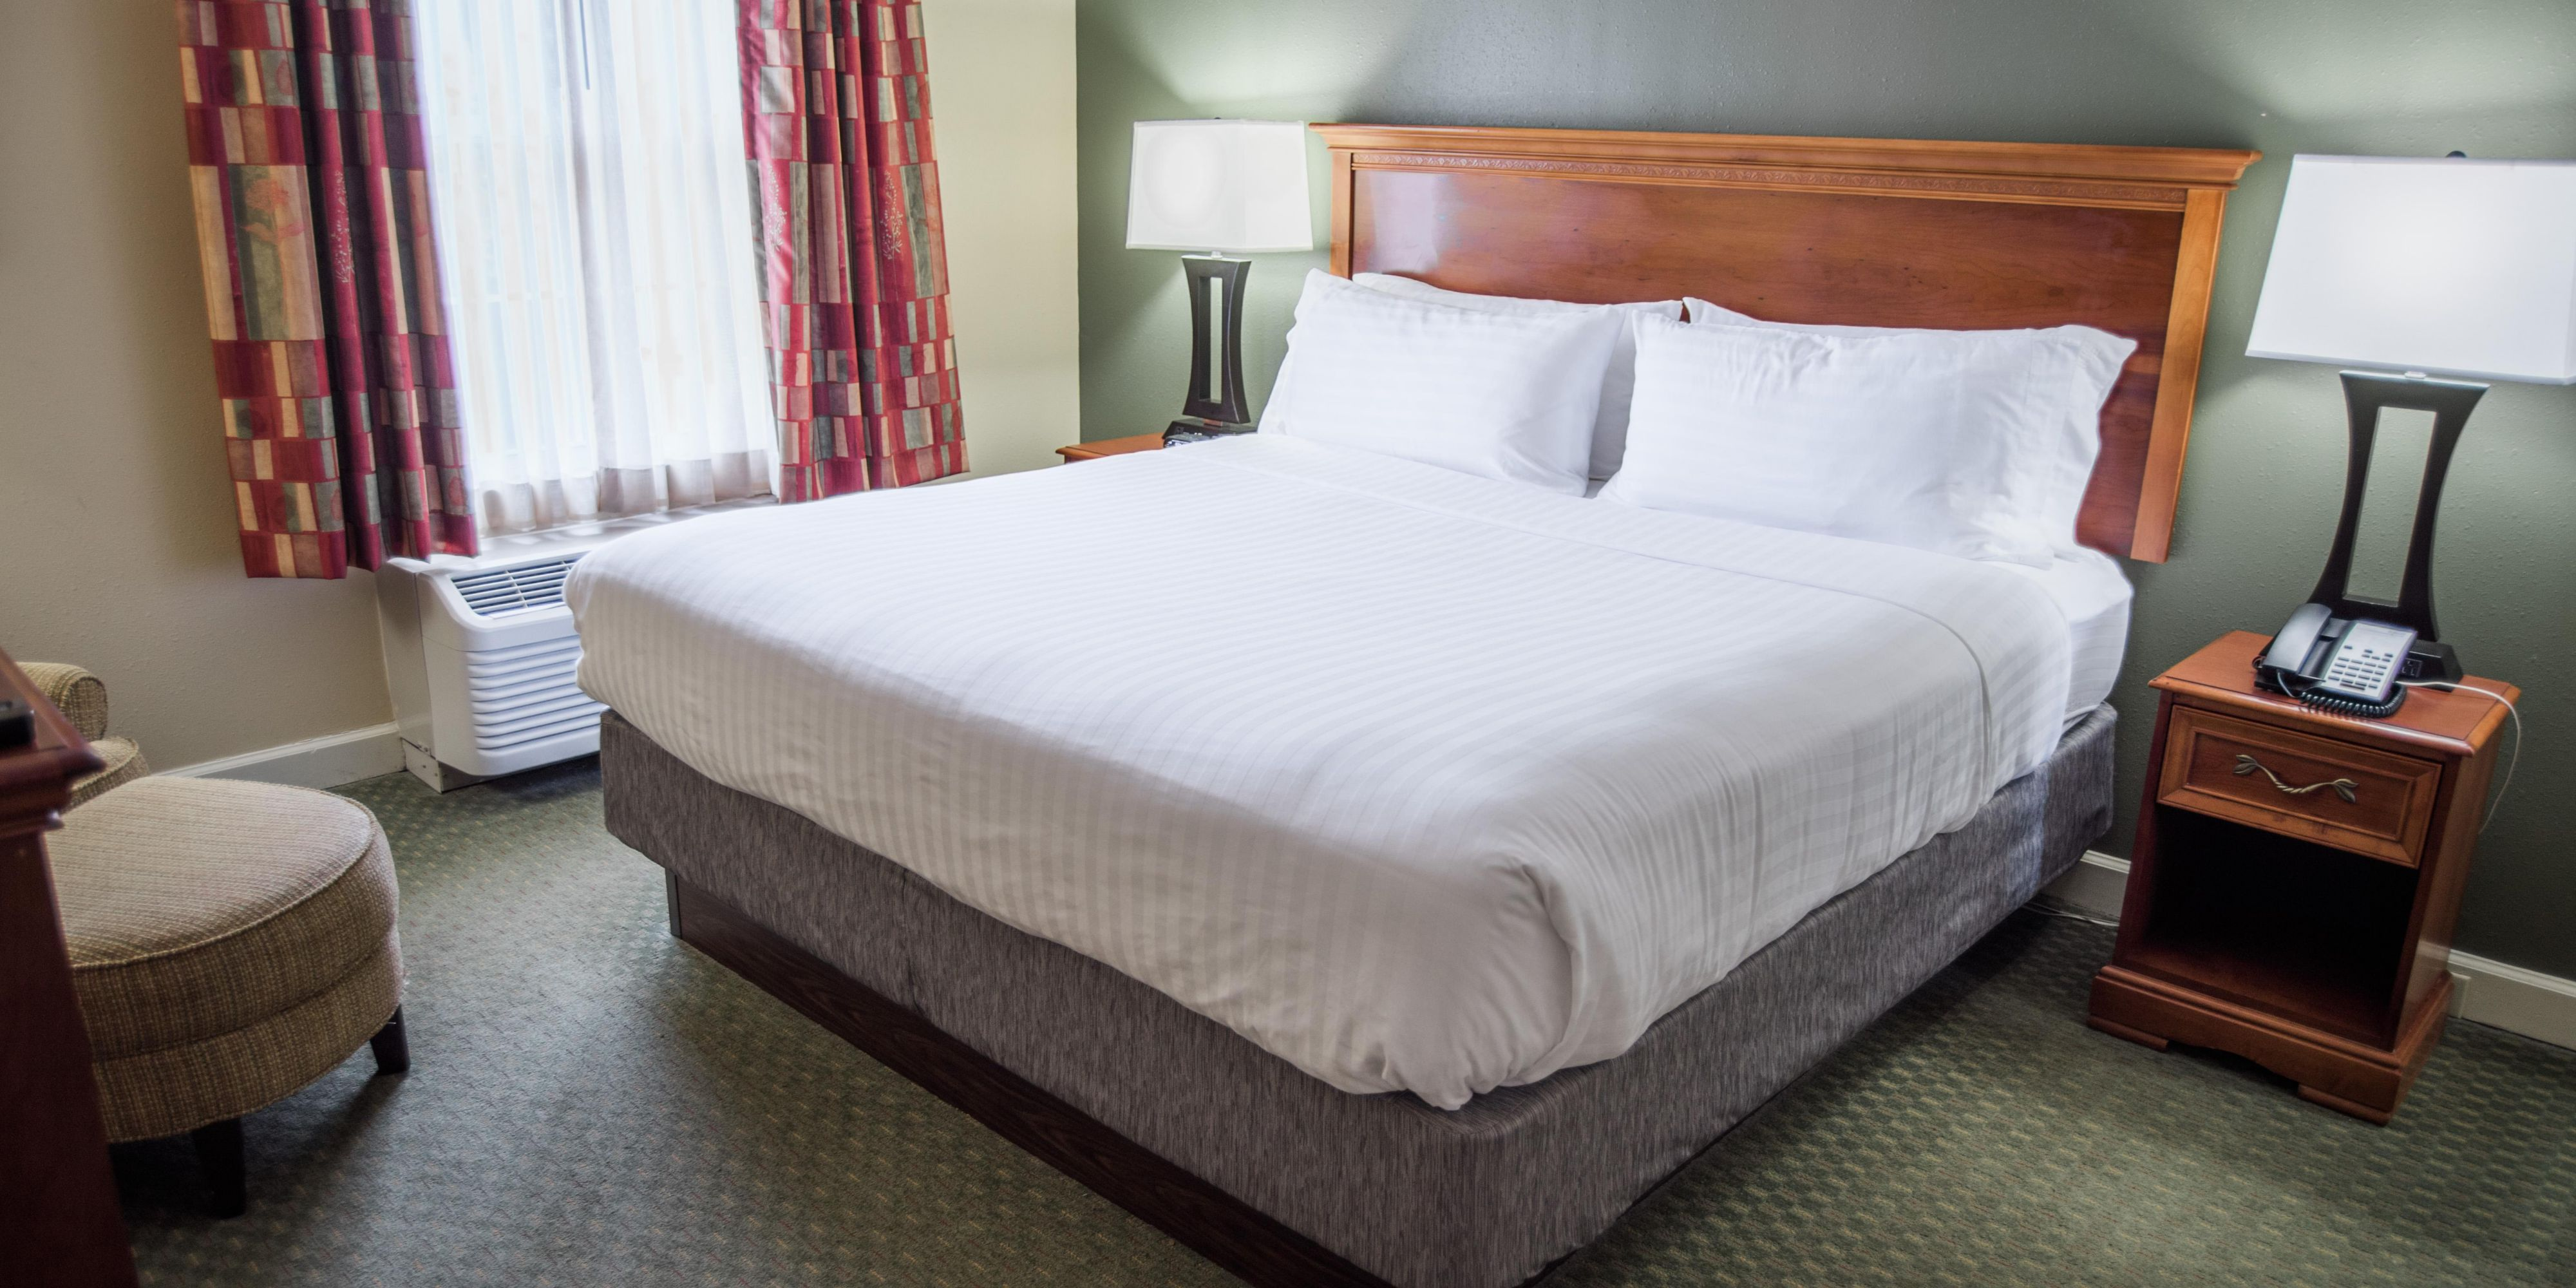 Holiday Inn Express & Suites Conover Hickory Area Hotel by IHG